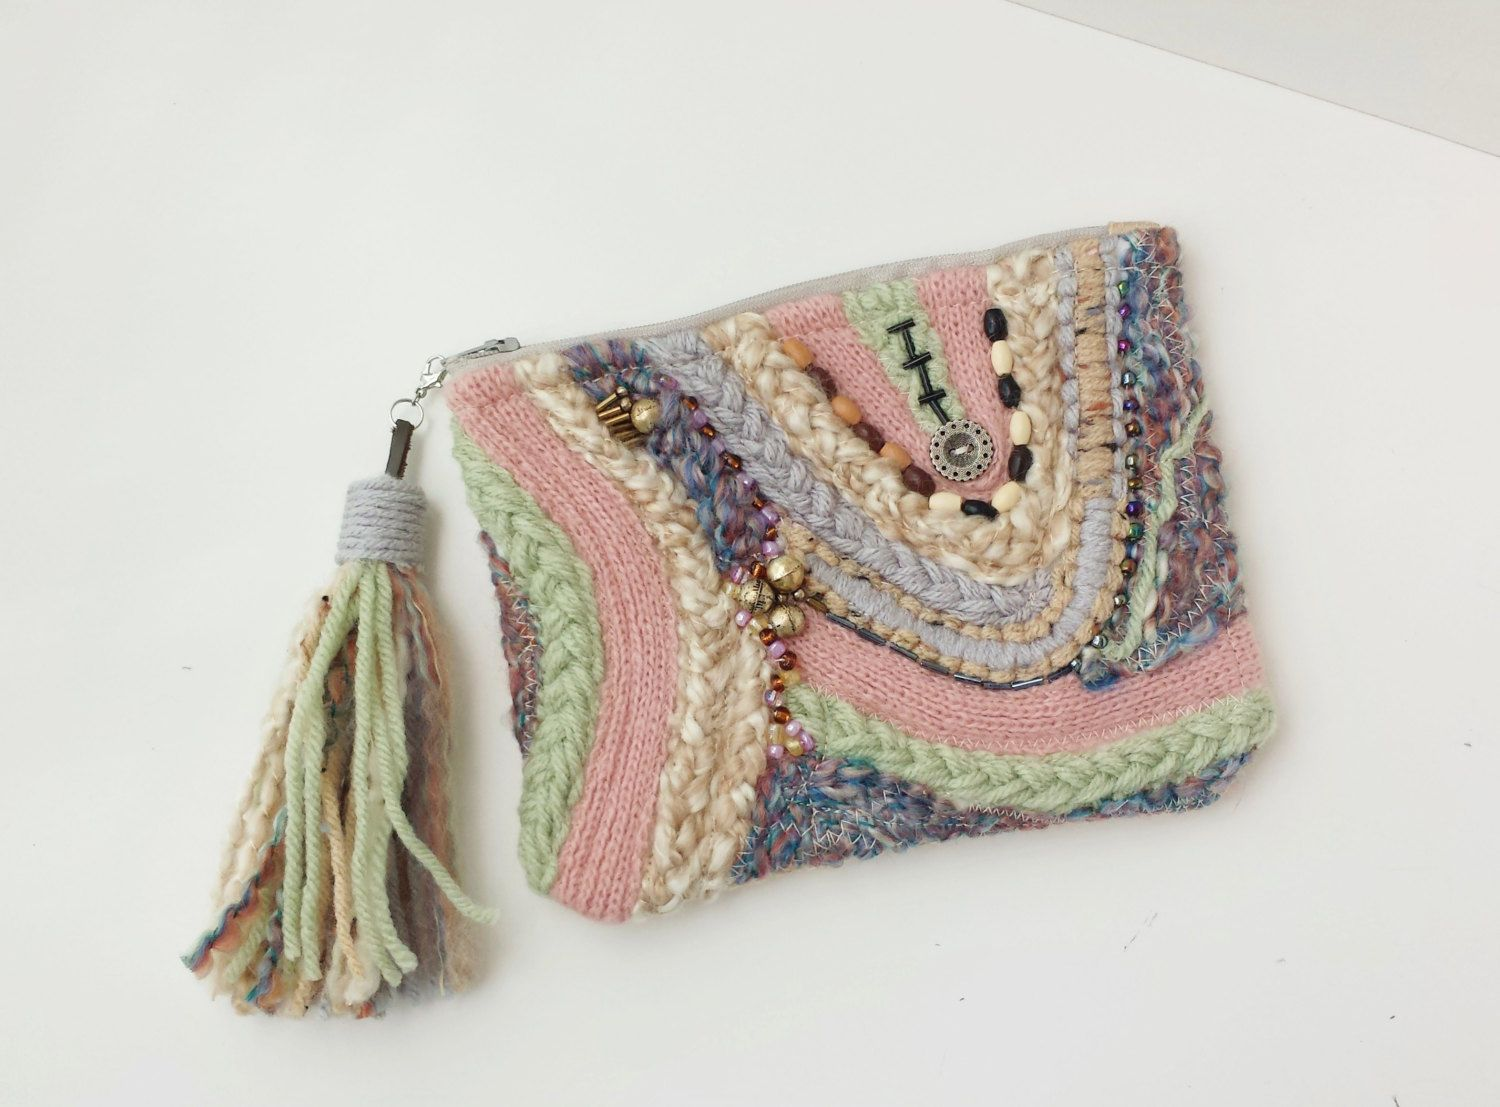 Fiber Art bag Hand Woven Cosmetic bag Makeup pouch Gift for her Boho Artsy Fairy Accessories Purse Etsy gift ideas by Saidonia Eco by SaidoniaEco on Etsy https://www.etsy.com/ca/listing/260512152/fiber-art-bag-hand-woven-cosmetic-bag